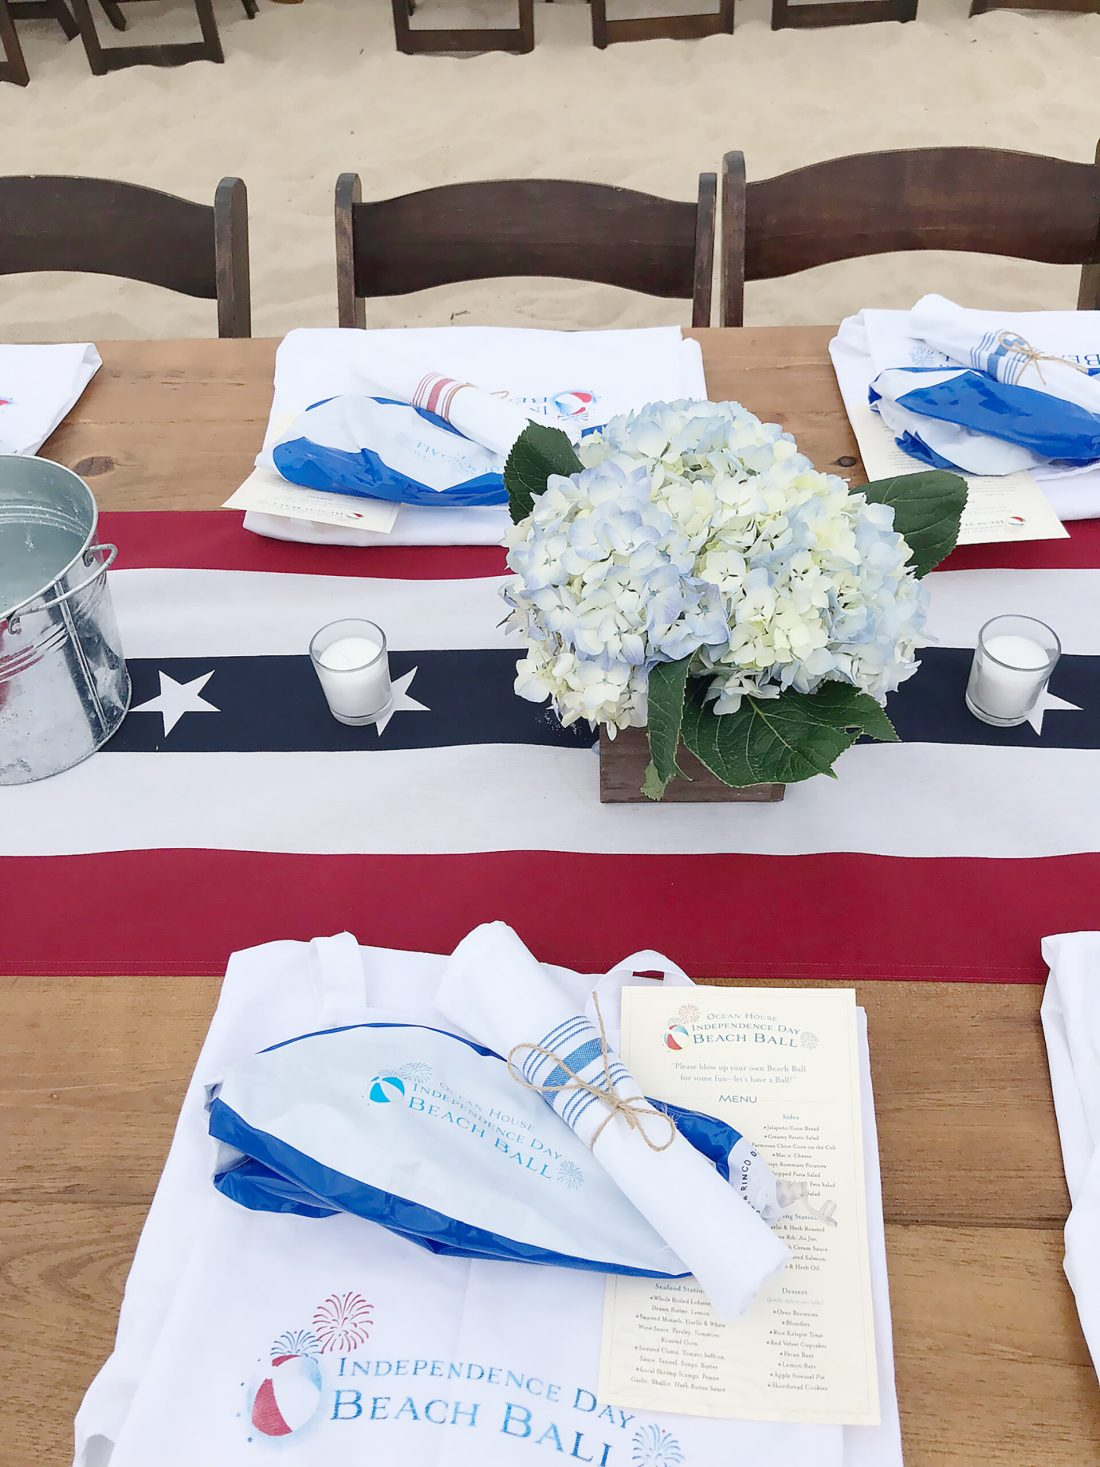 The Ocean House's Beach Ball Independance Party is the quintessential of New England's 4th of July charm, Rhode Island, Fourth of July || Darling Darleen Top Lifestyle CT Blogger #fourthofjuly #4thofjuly #oceanhouseri